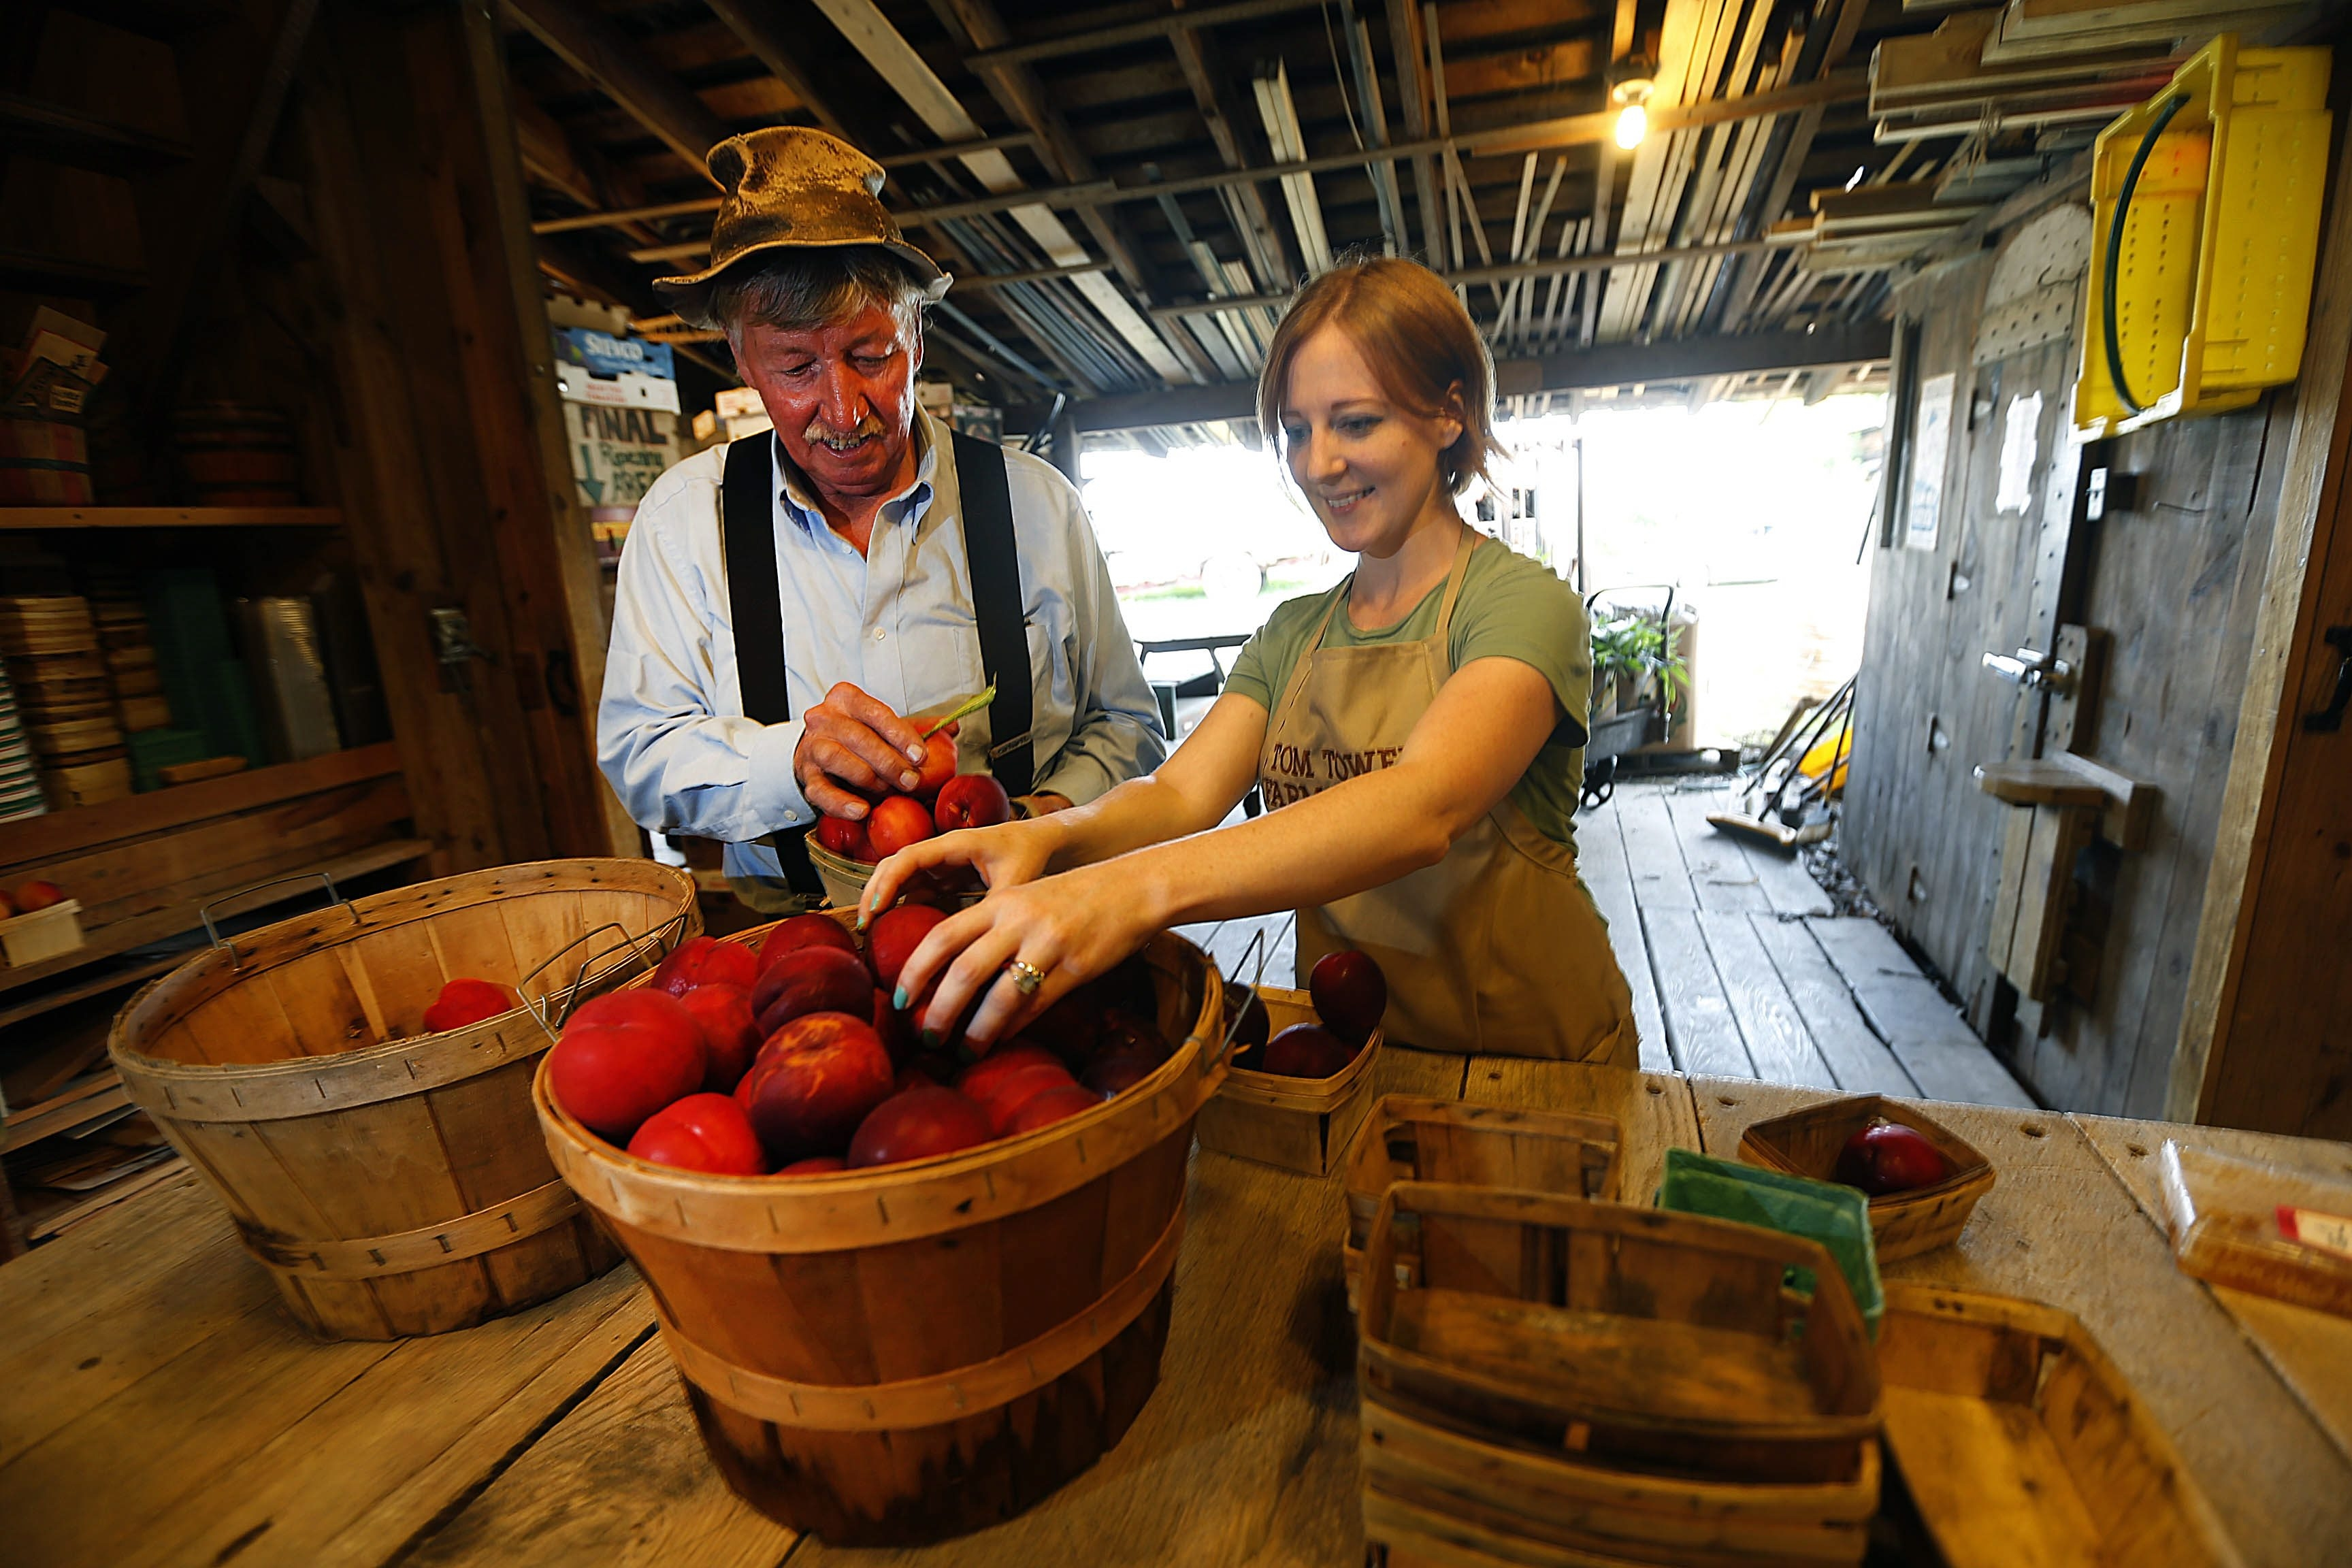 At Tom Tower's farm in Youngstown, 15-year staffer Erica Eaton helps him sort peaches, the specialty, for sale. Up at 2:30 a.m. six days a week and 4:30 the other, he says with pride that if you eat a locally grown peach, the chance is 80 percent it's a Tower.